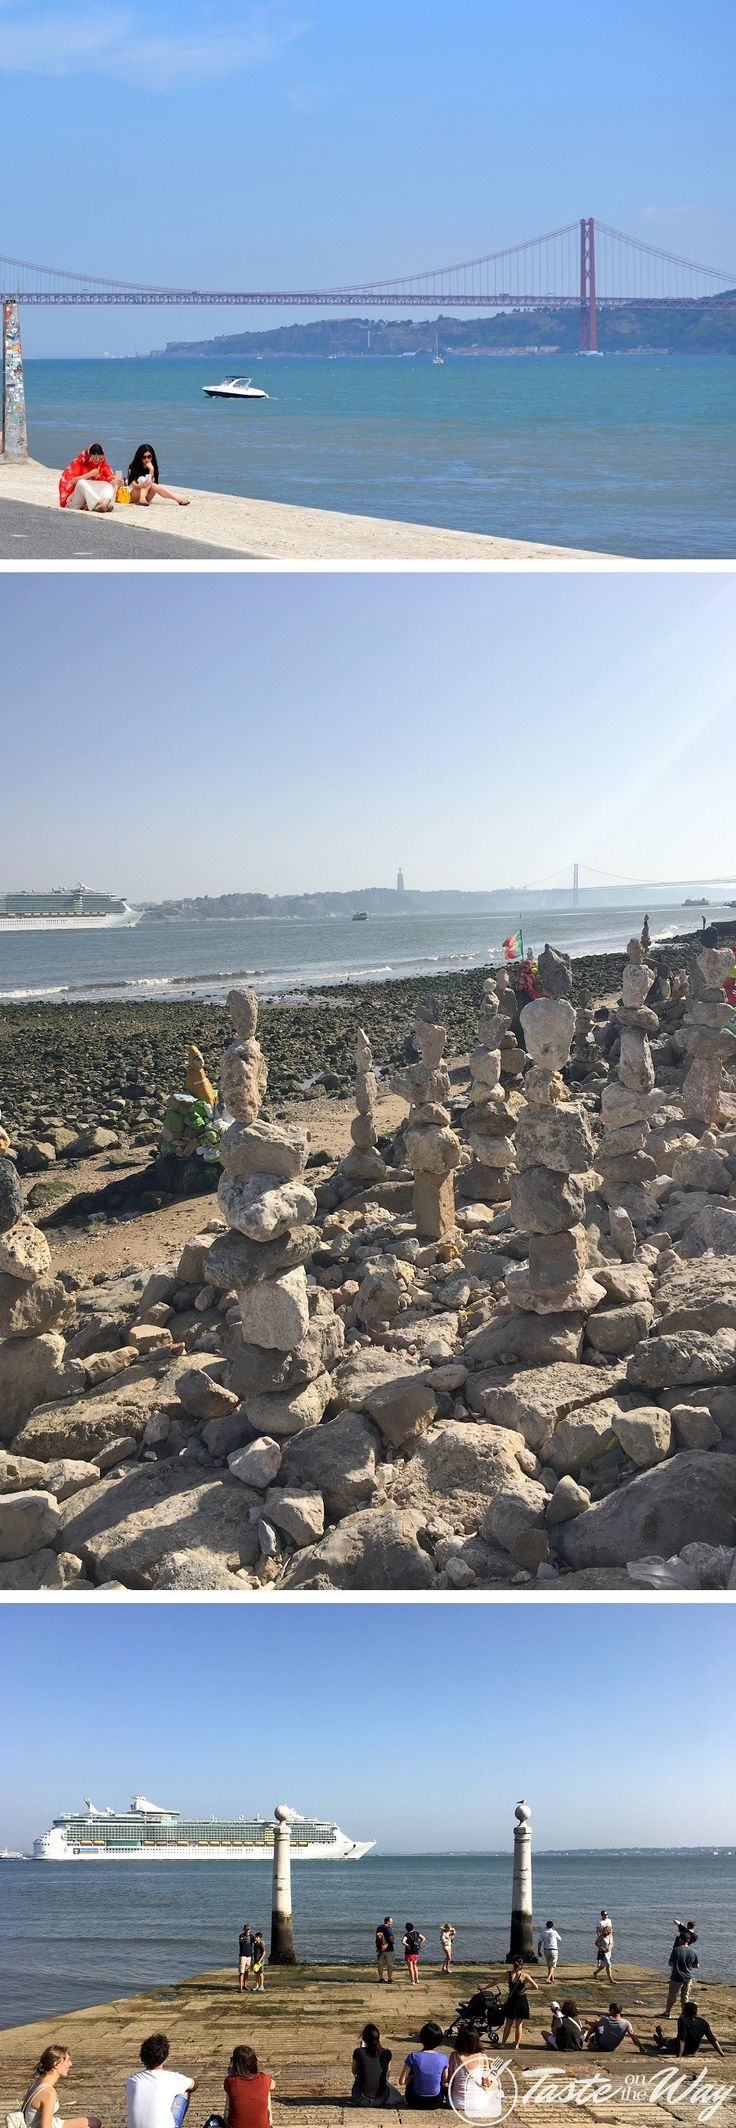 Check out our travel story about the river Tejo in Lisbon with pictures @tasteontheway